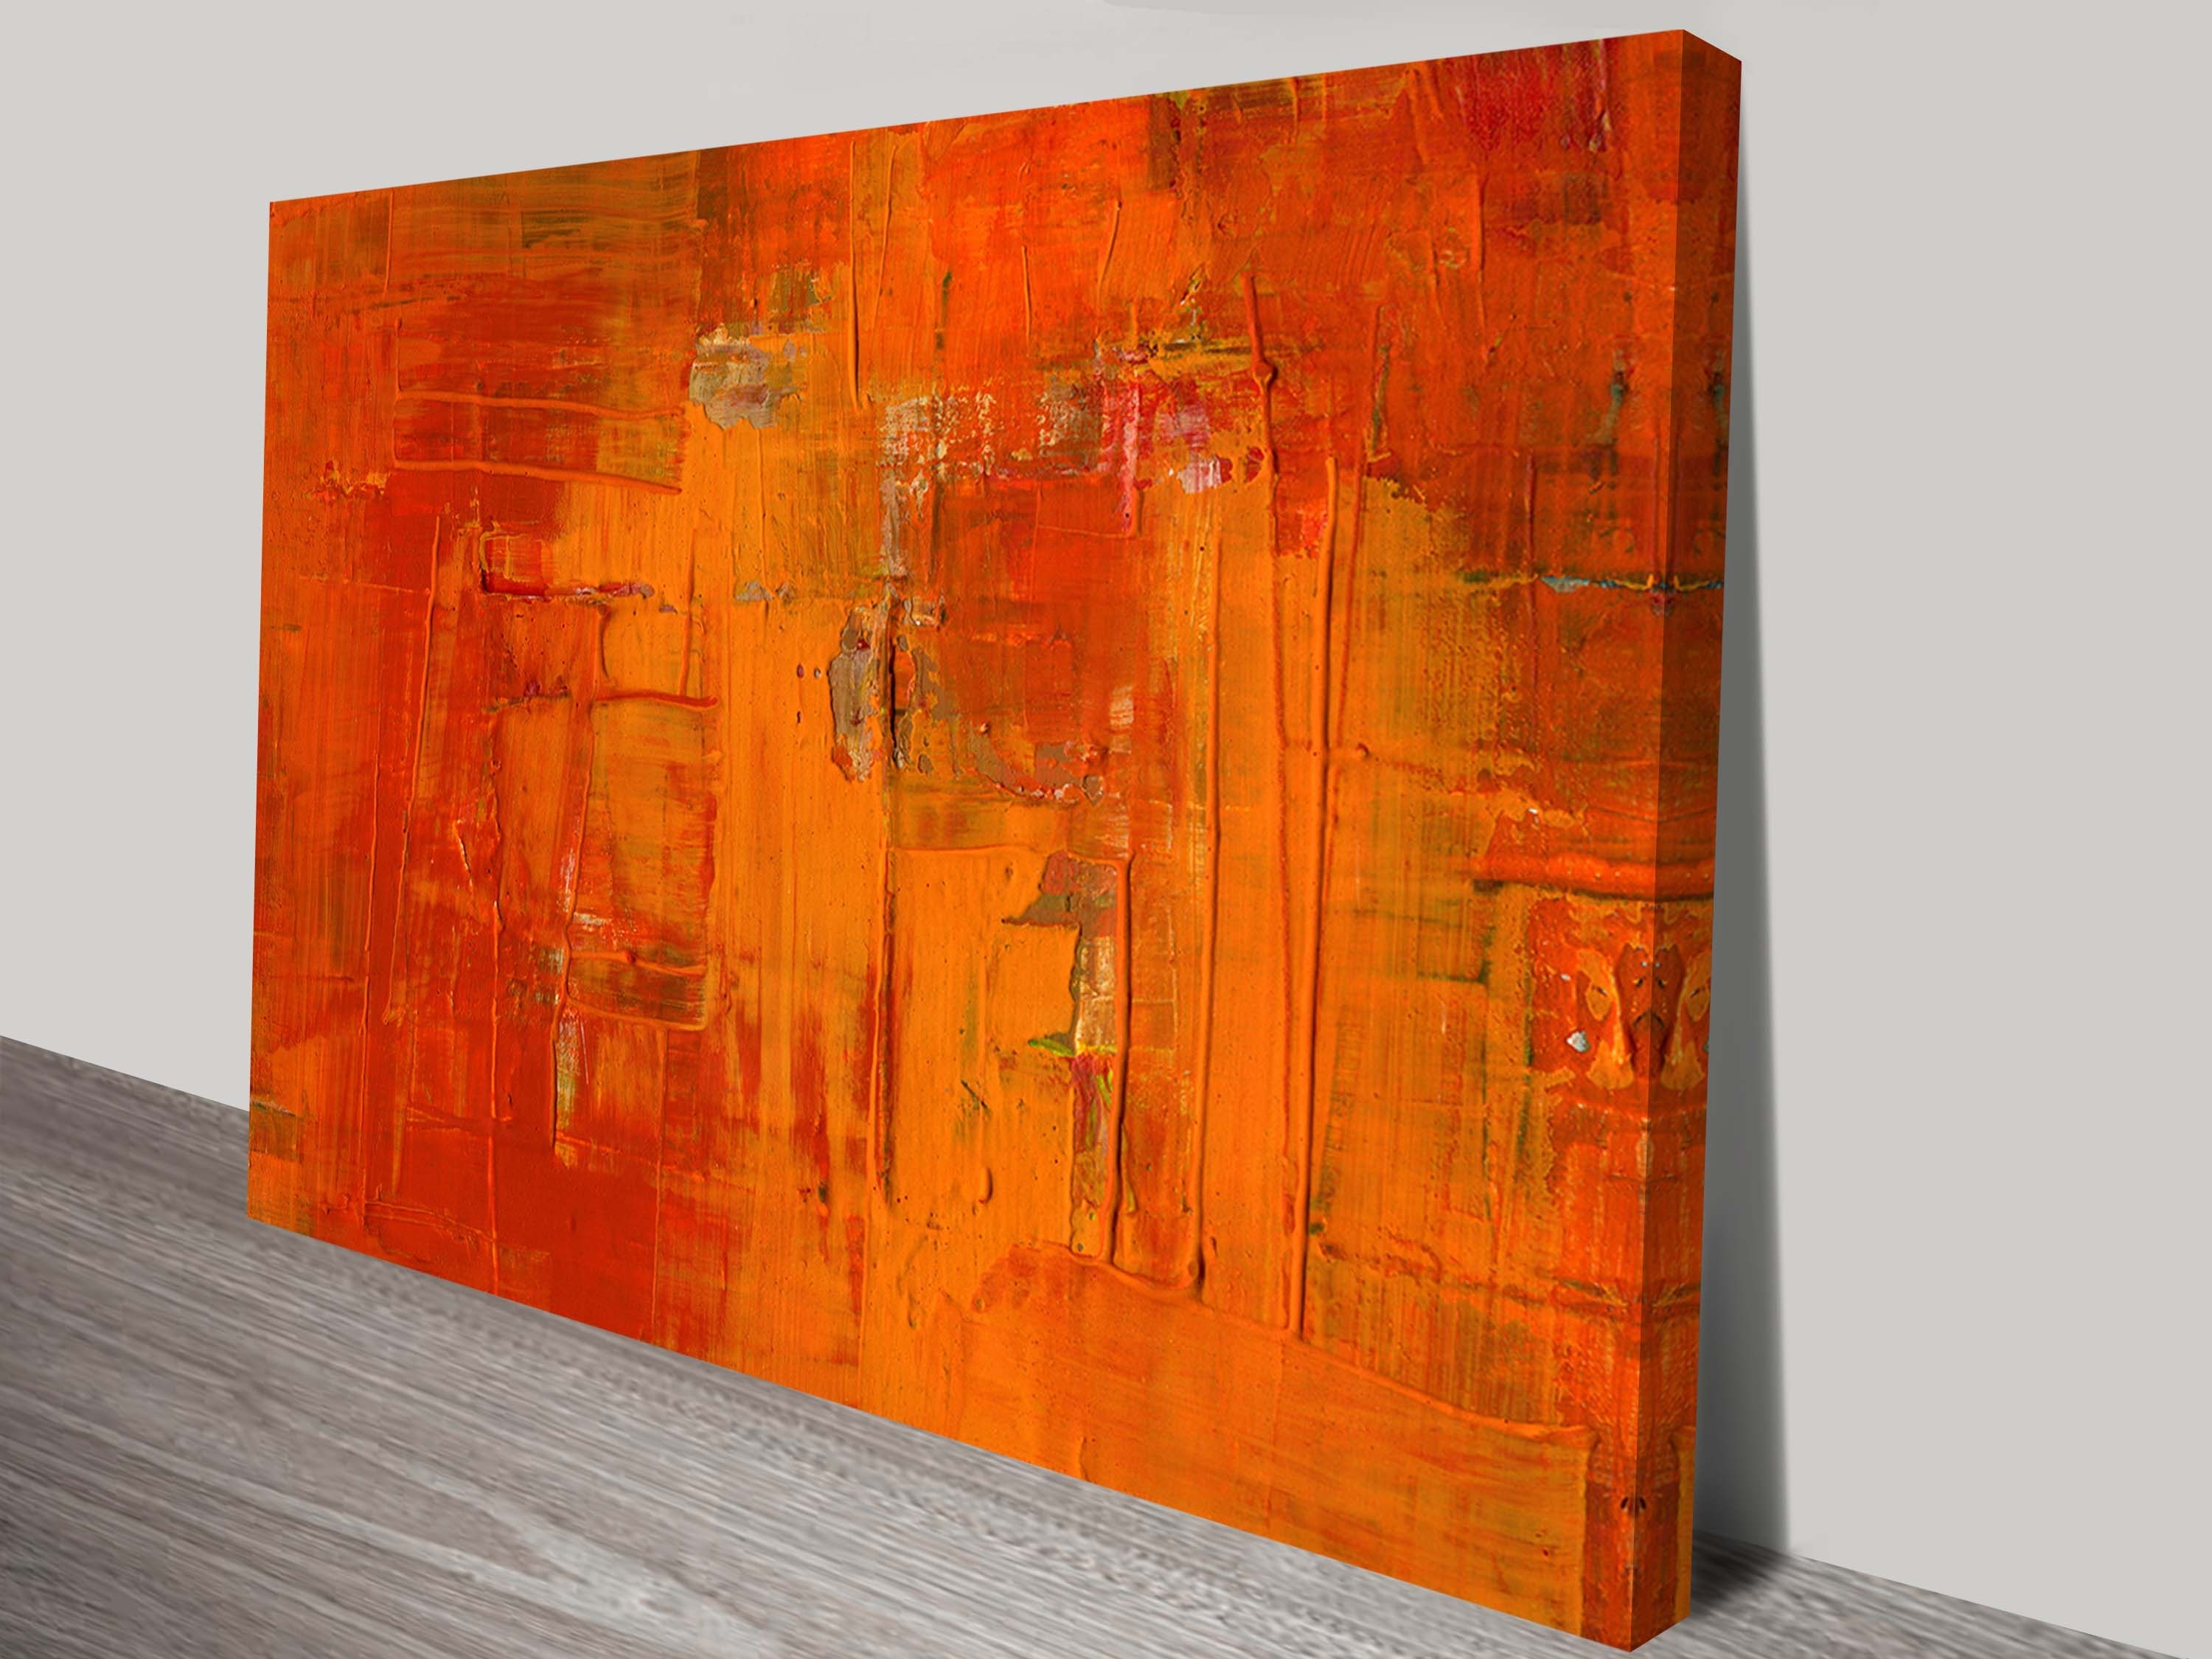 Painted Fire Abstract And Contemporary Art intended for Abstract Canvas Wall Art (Image 17 of 20)